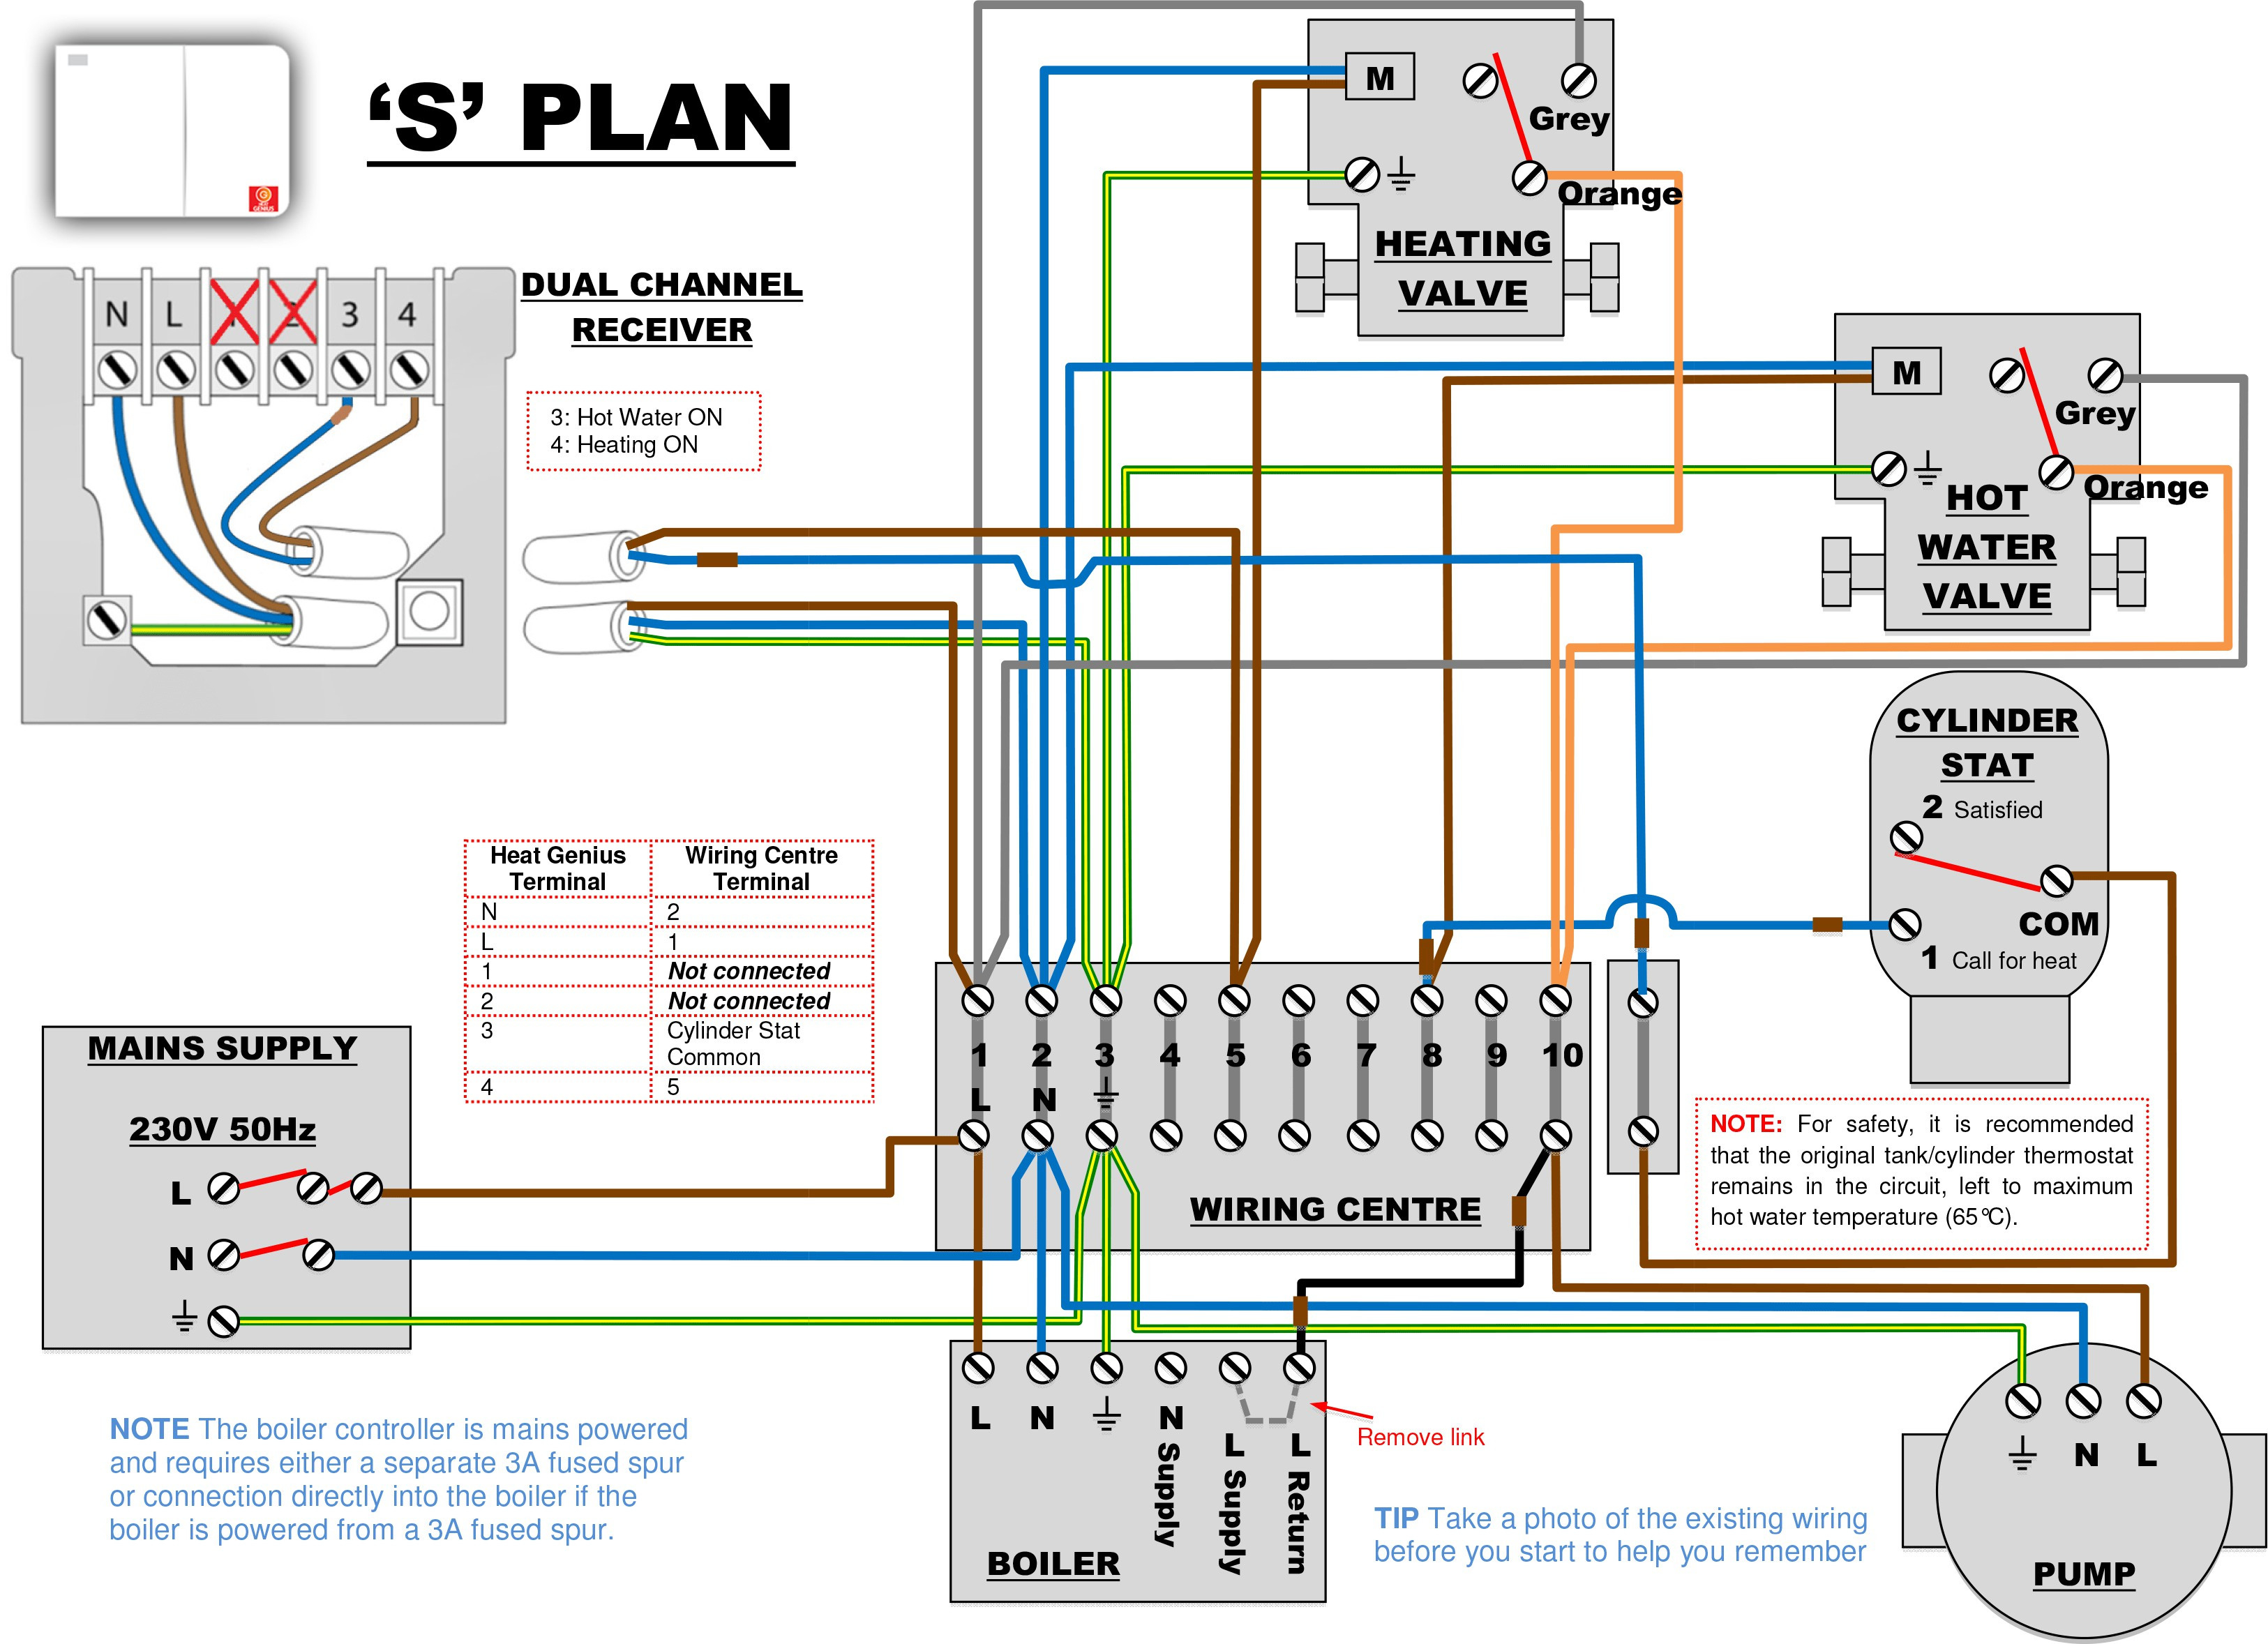 wiring diagram for the nest thermostat sample Nest Hello Wiring-Diagram wiring diagram for the nest thermostat nest wireless thermostat wiring diagram valid nest thermostat wiring